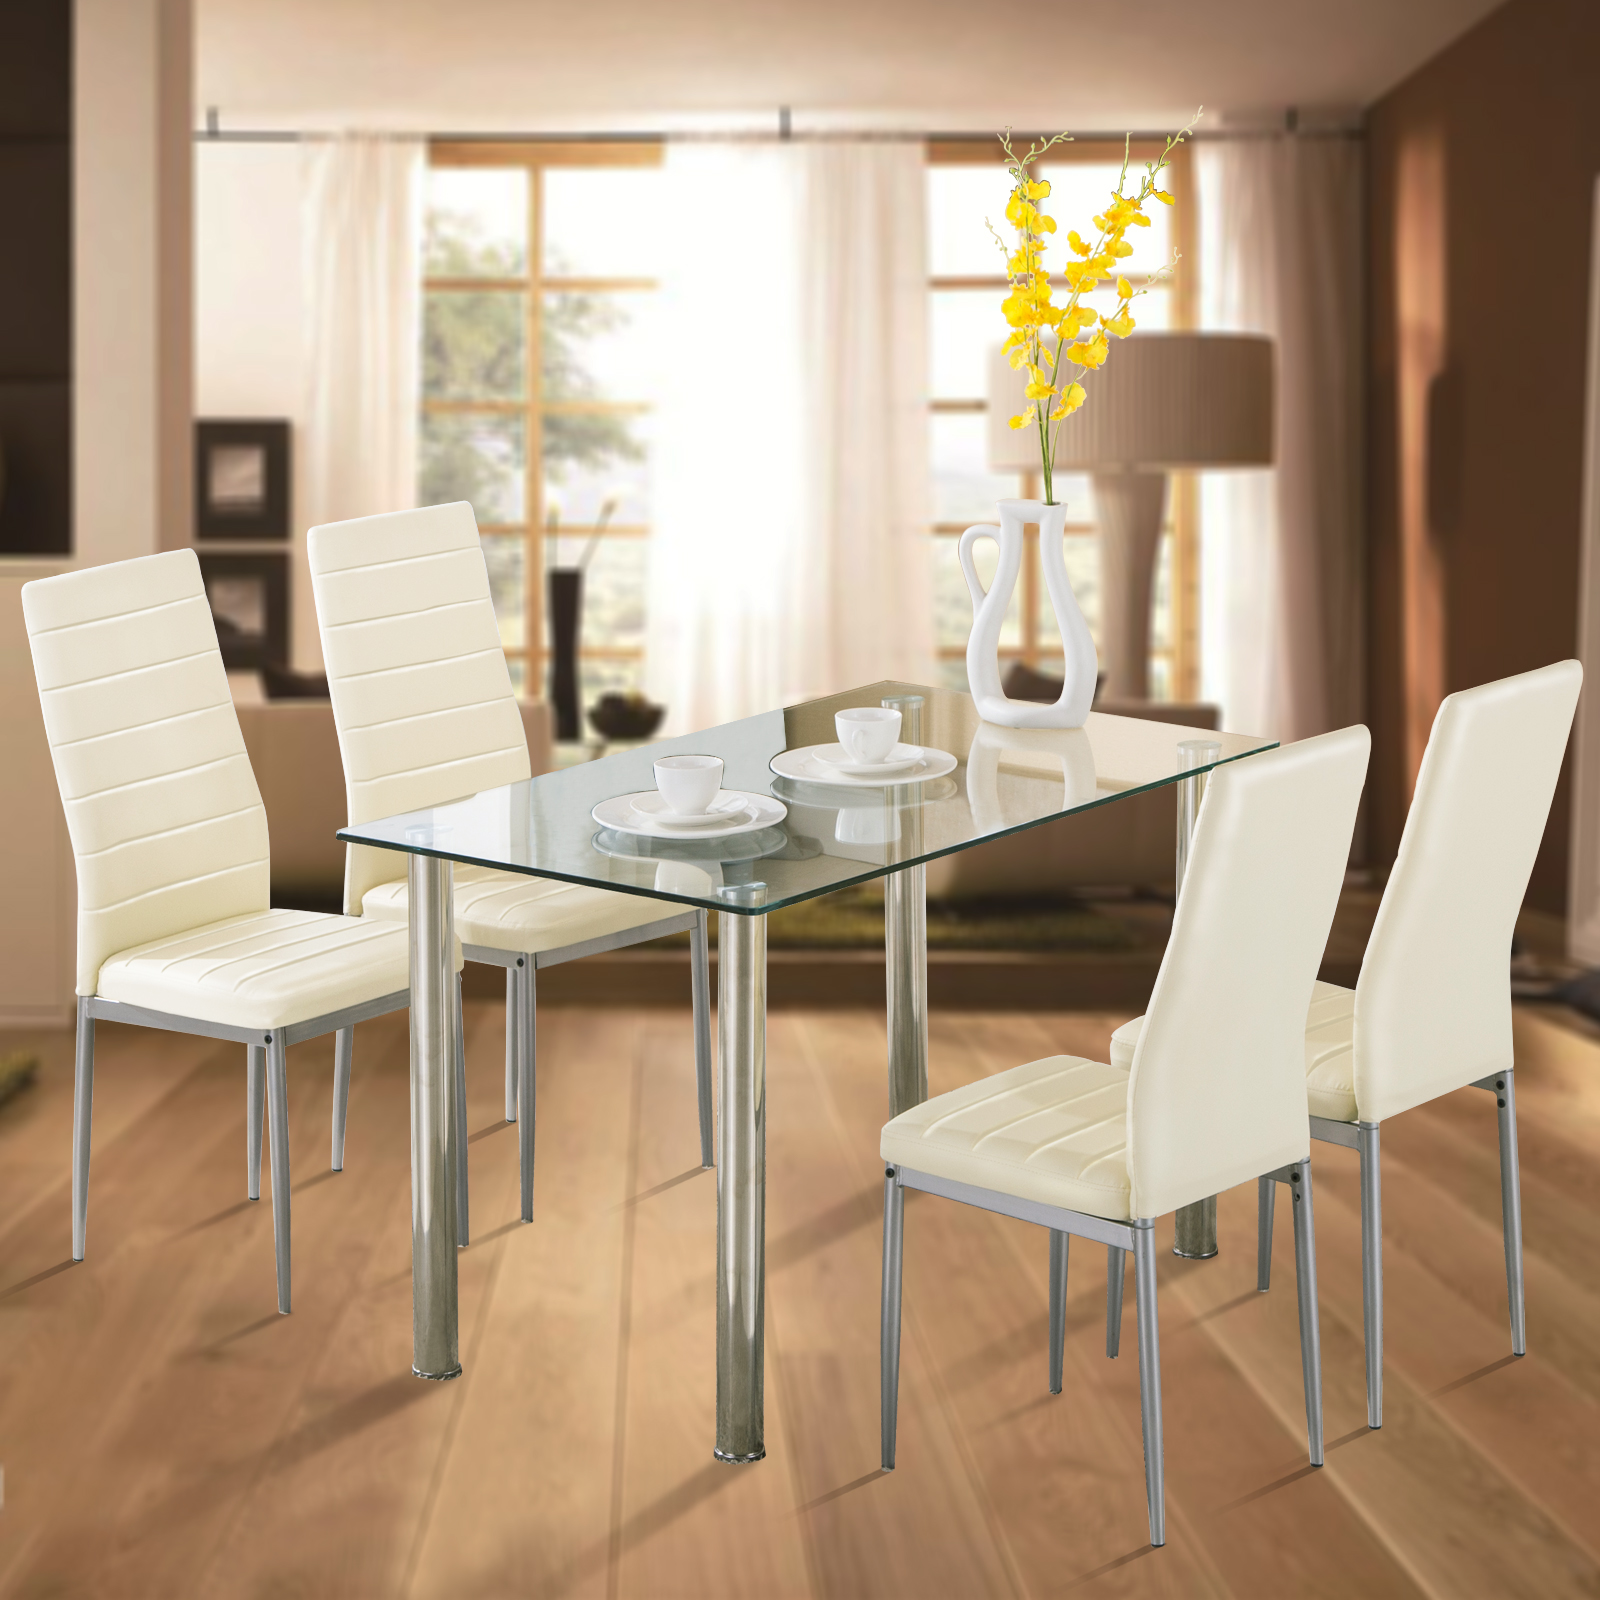 Uenjoy 5pcs Glass Dining Table With 4 Chairs Set Kitchen Furniture